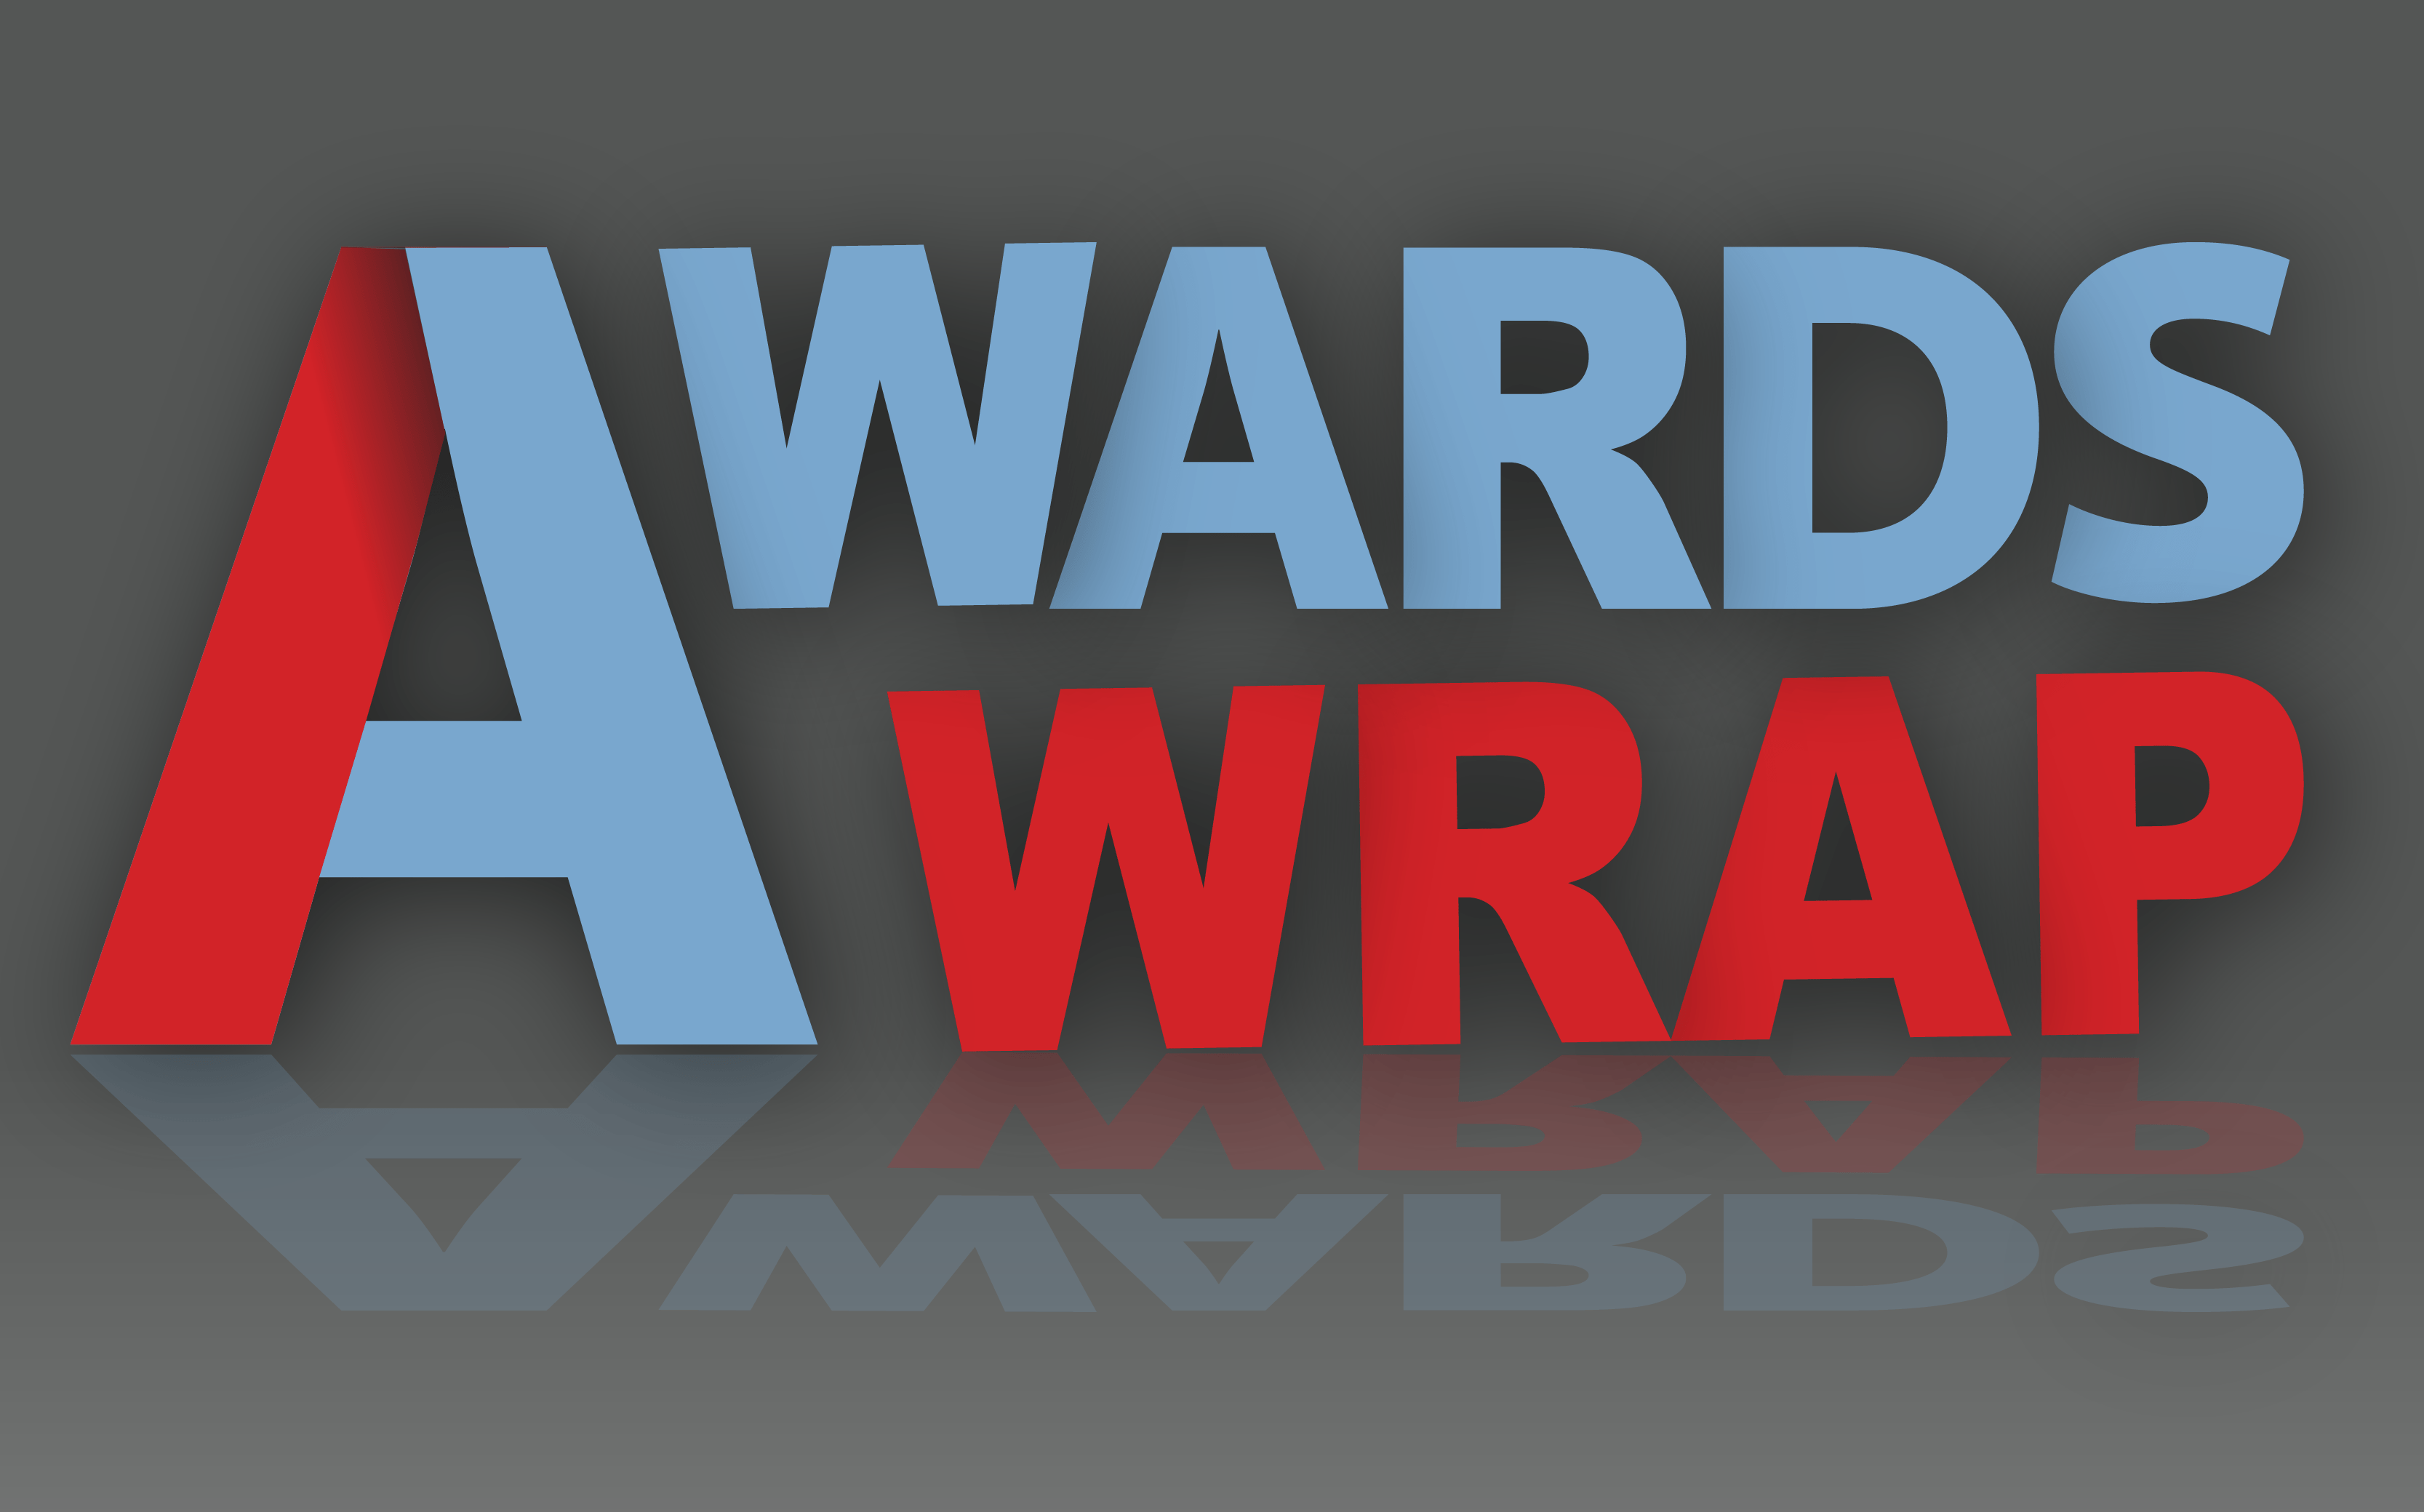 Awards Wrap: Financial Mail AdFocus finalists, Ackermans wins big